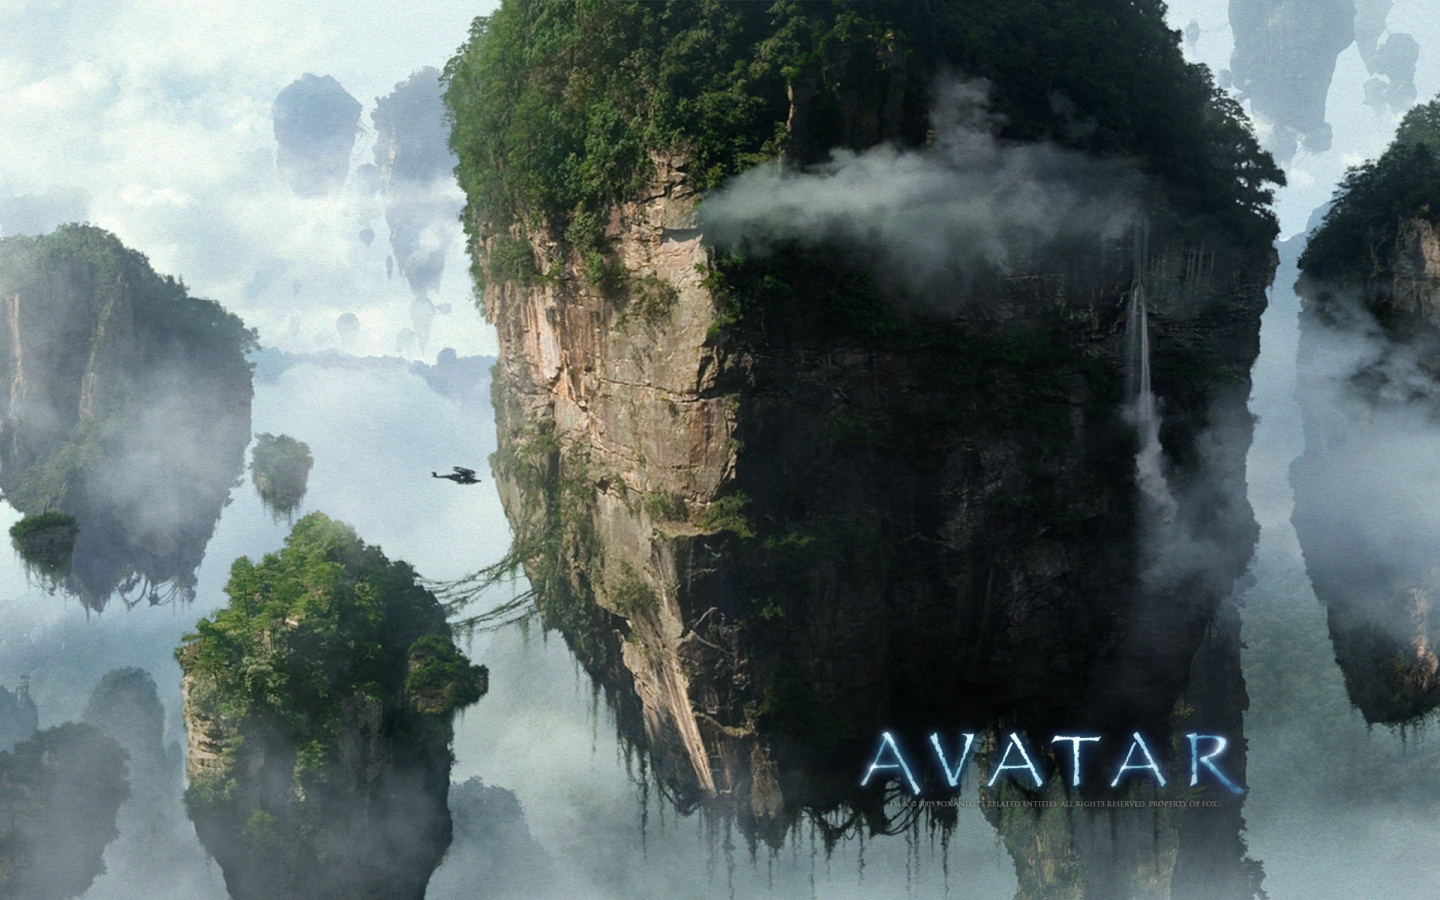 Avatar Movie Pandora 1440x900 Avatar Pandor...